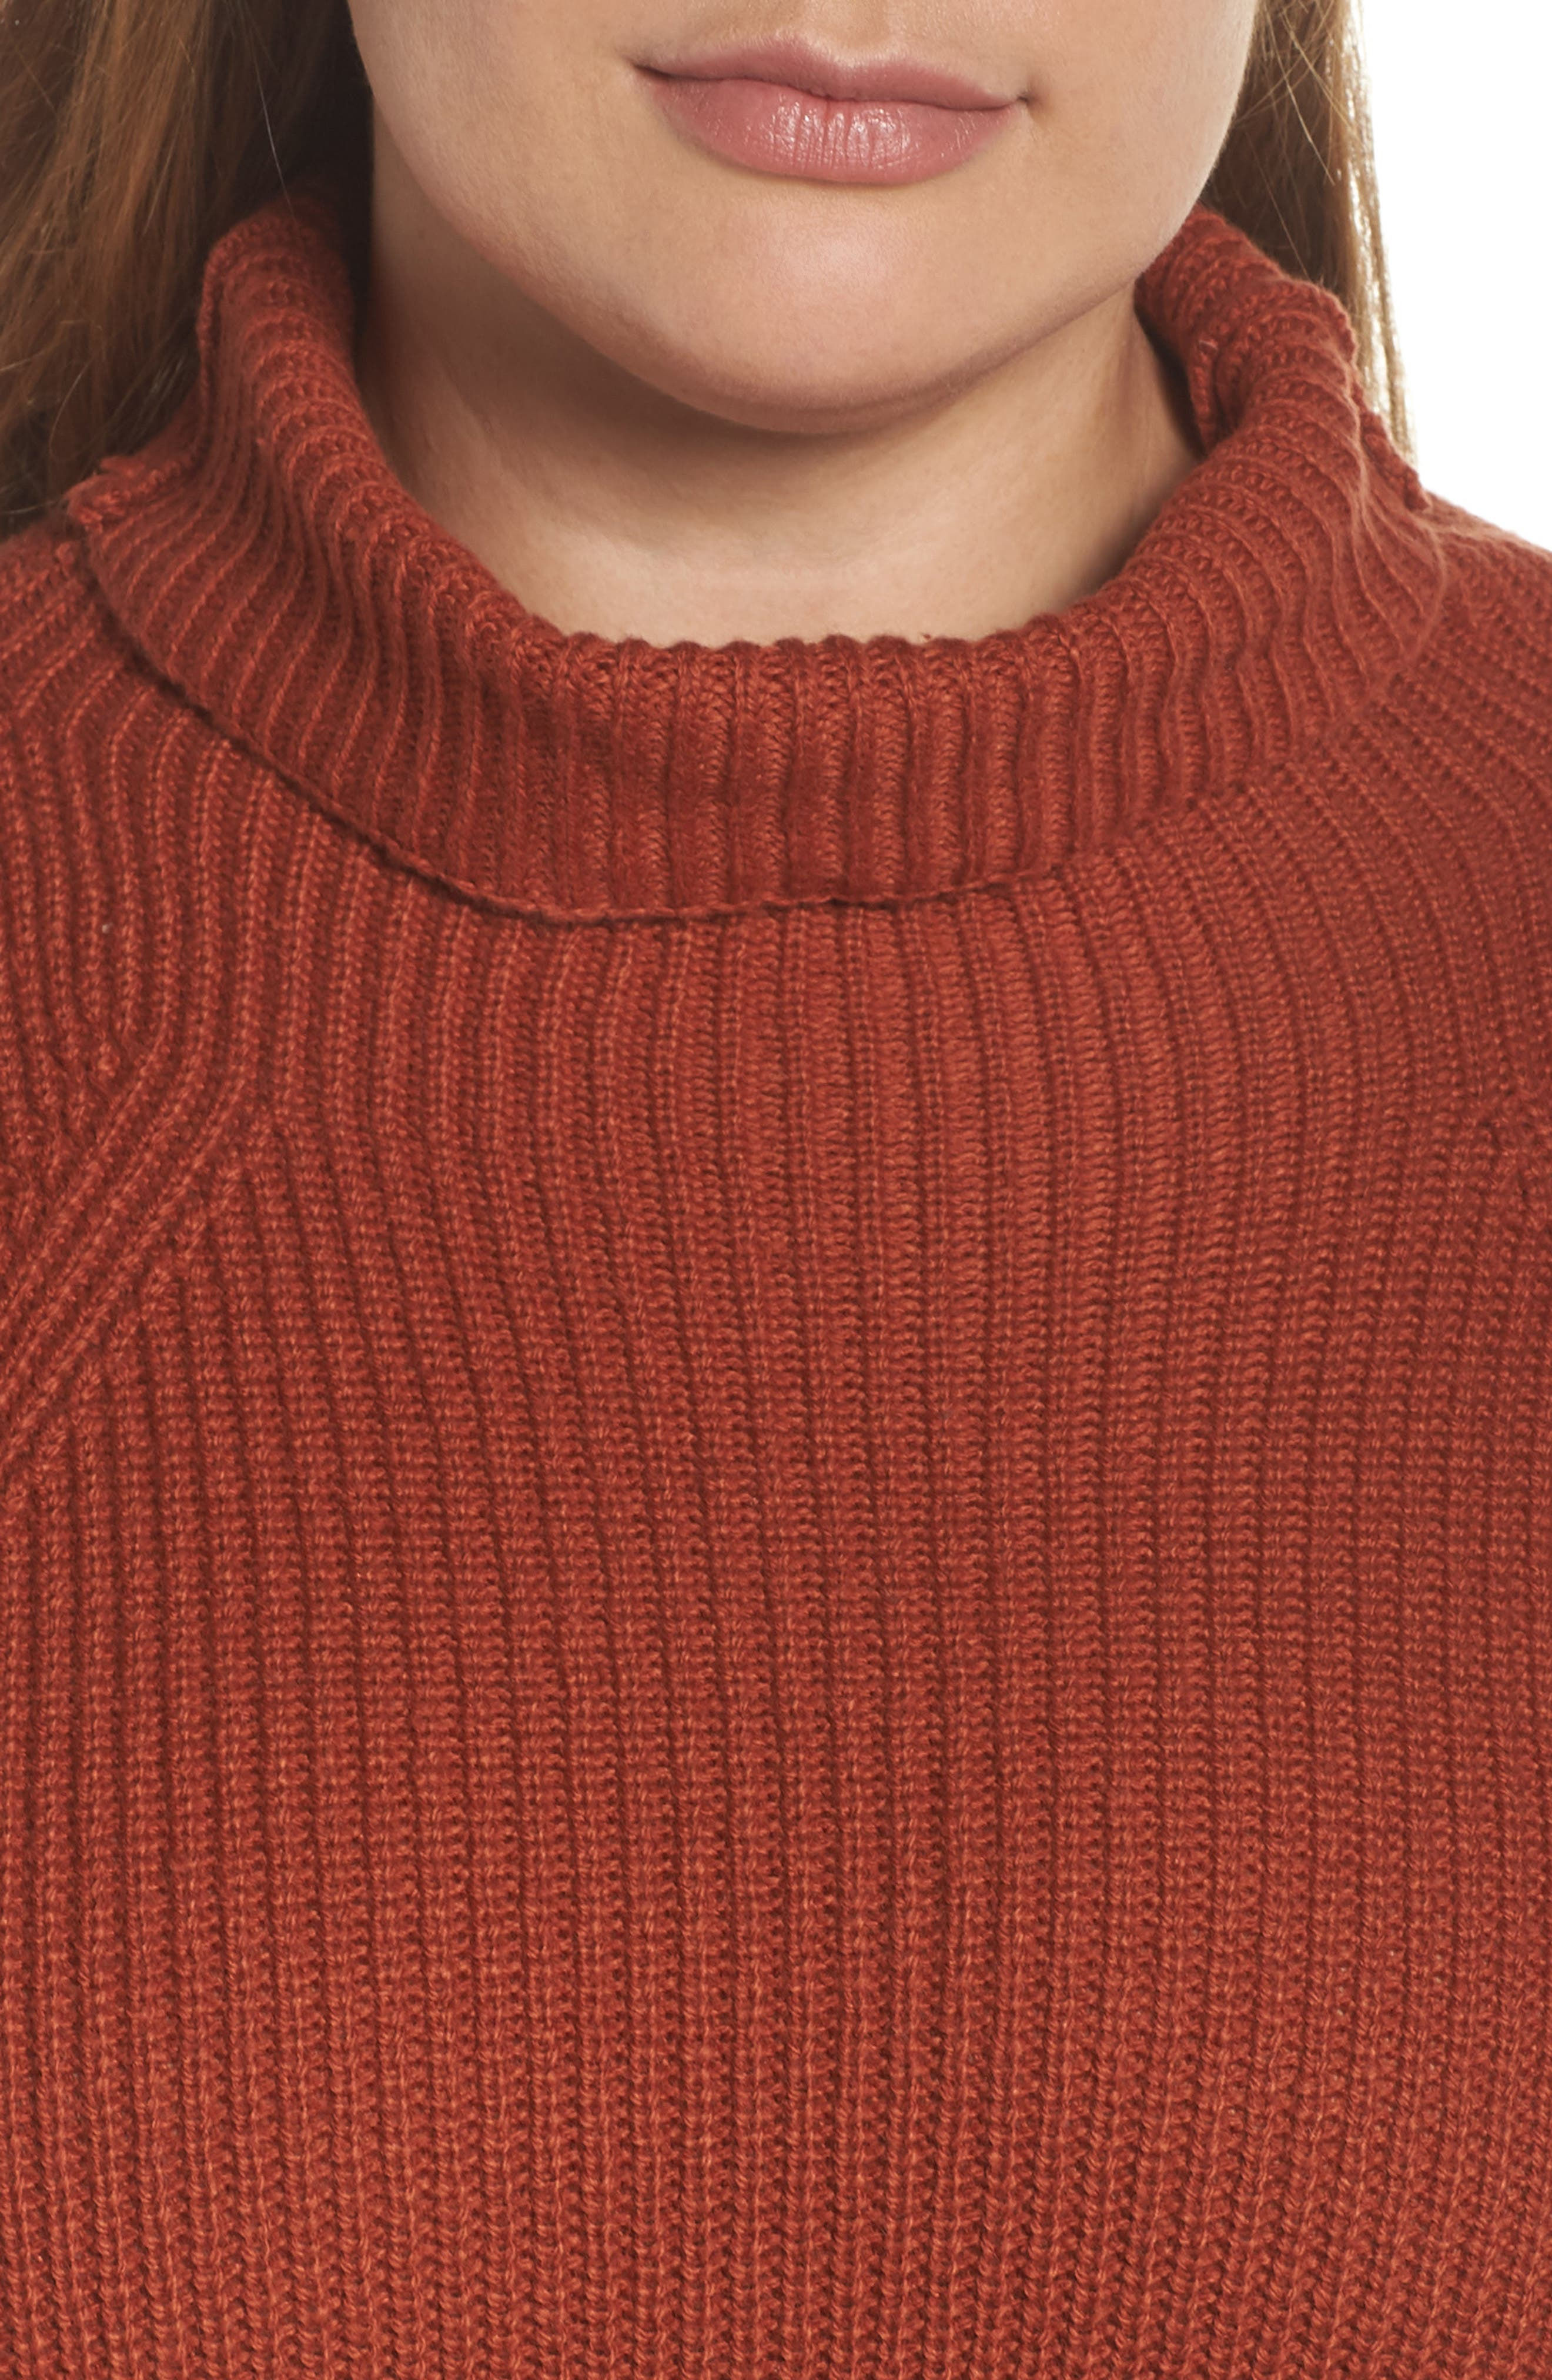 Transfer Stitch Turtleneck Sweater,                             Alternate thumbnail 10, color,                             BROWN SPICE